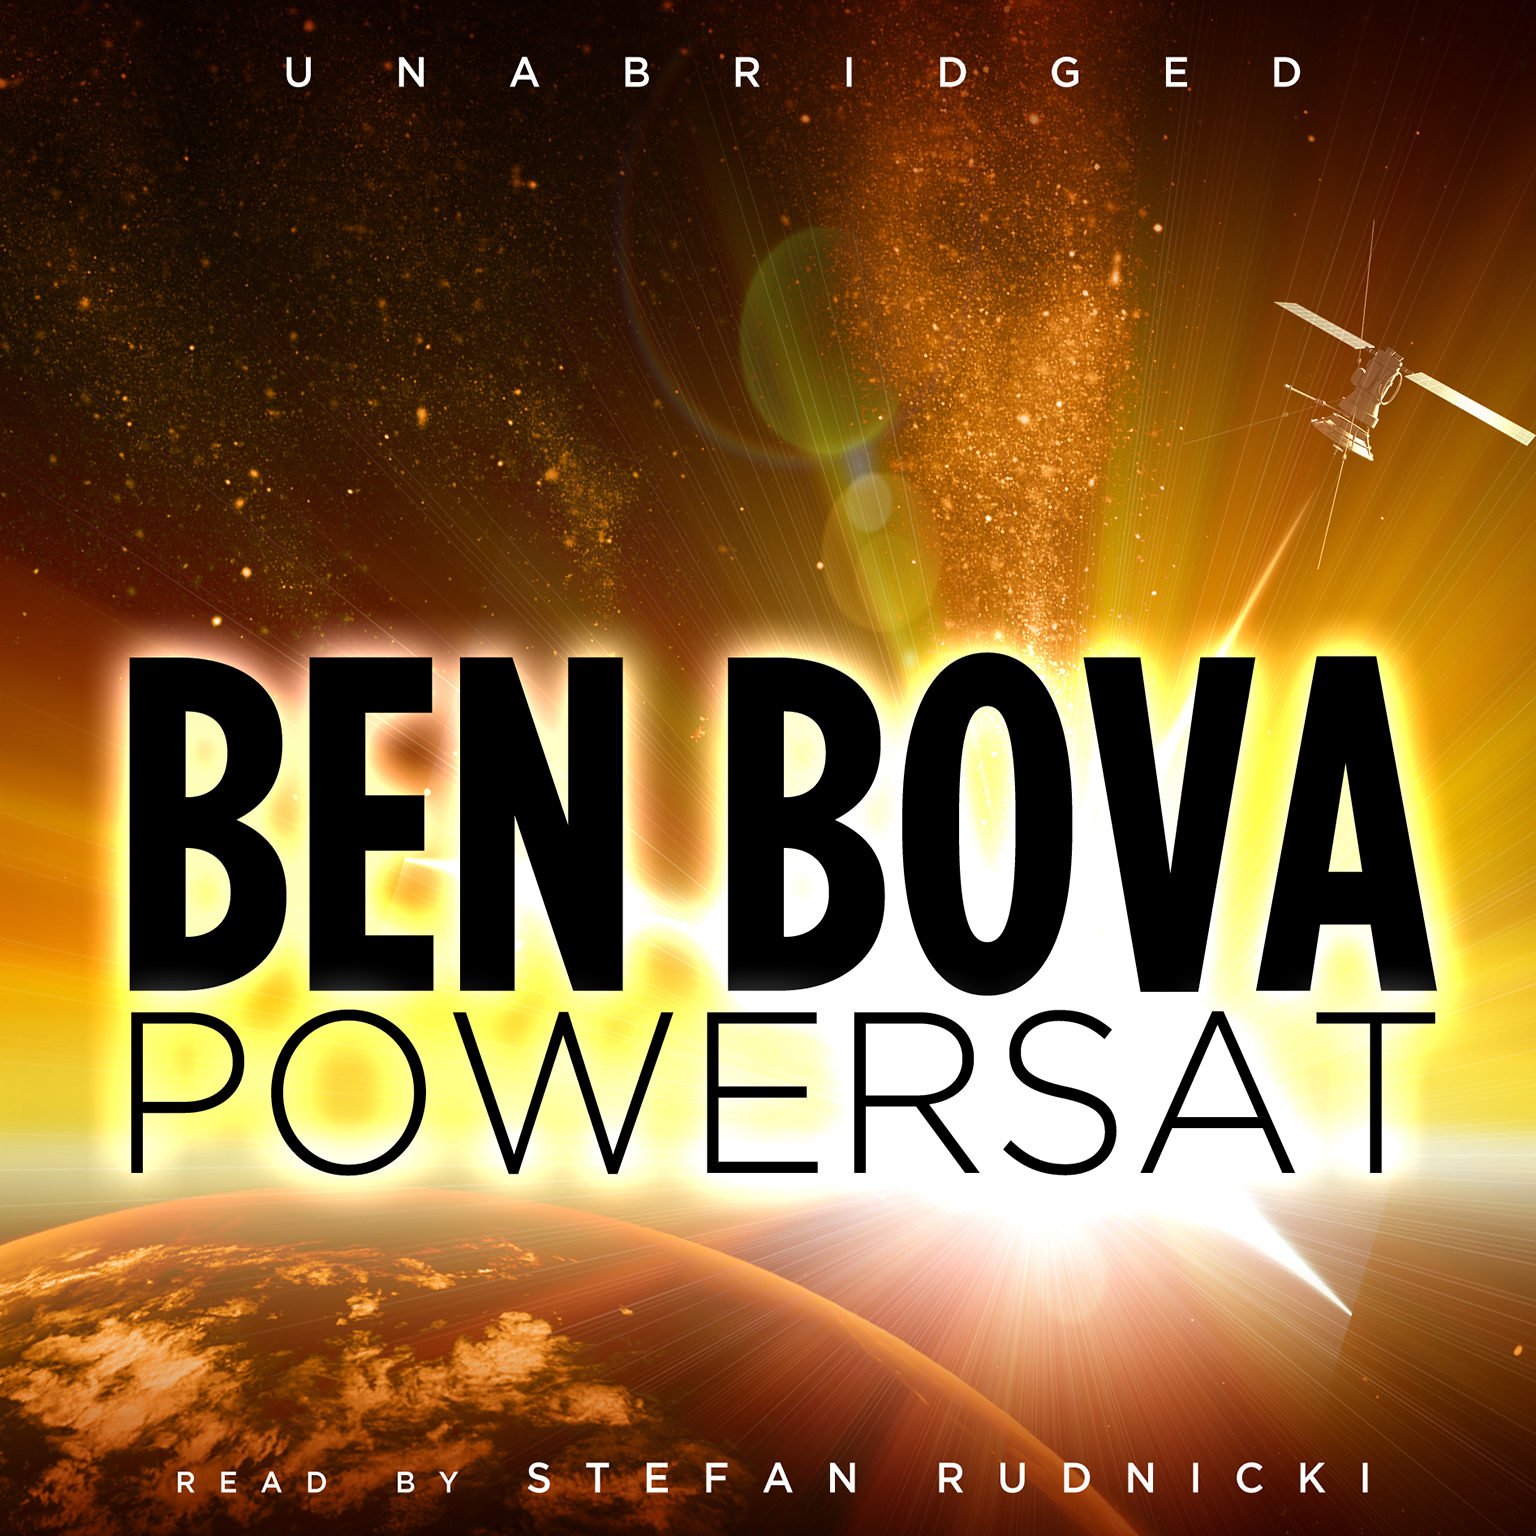 Printable Powersat Audiobook Cover Art